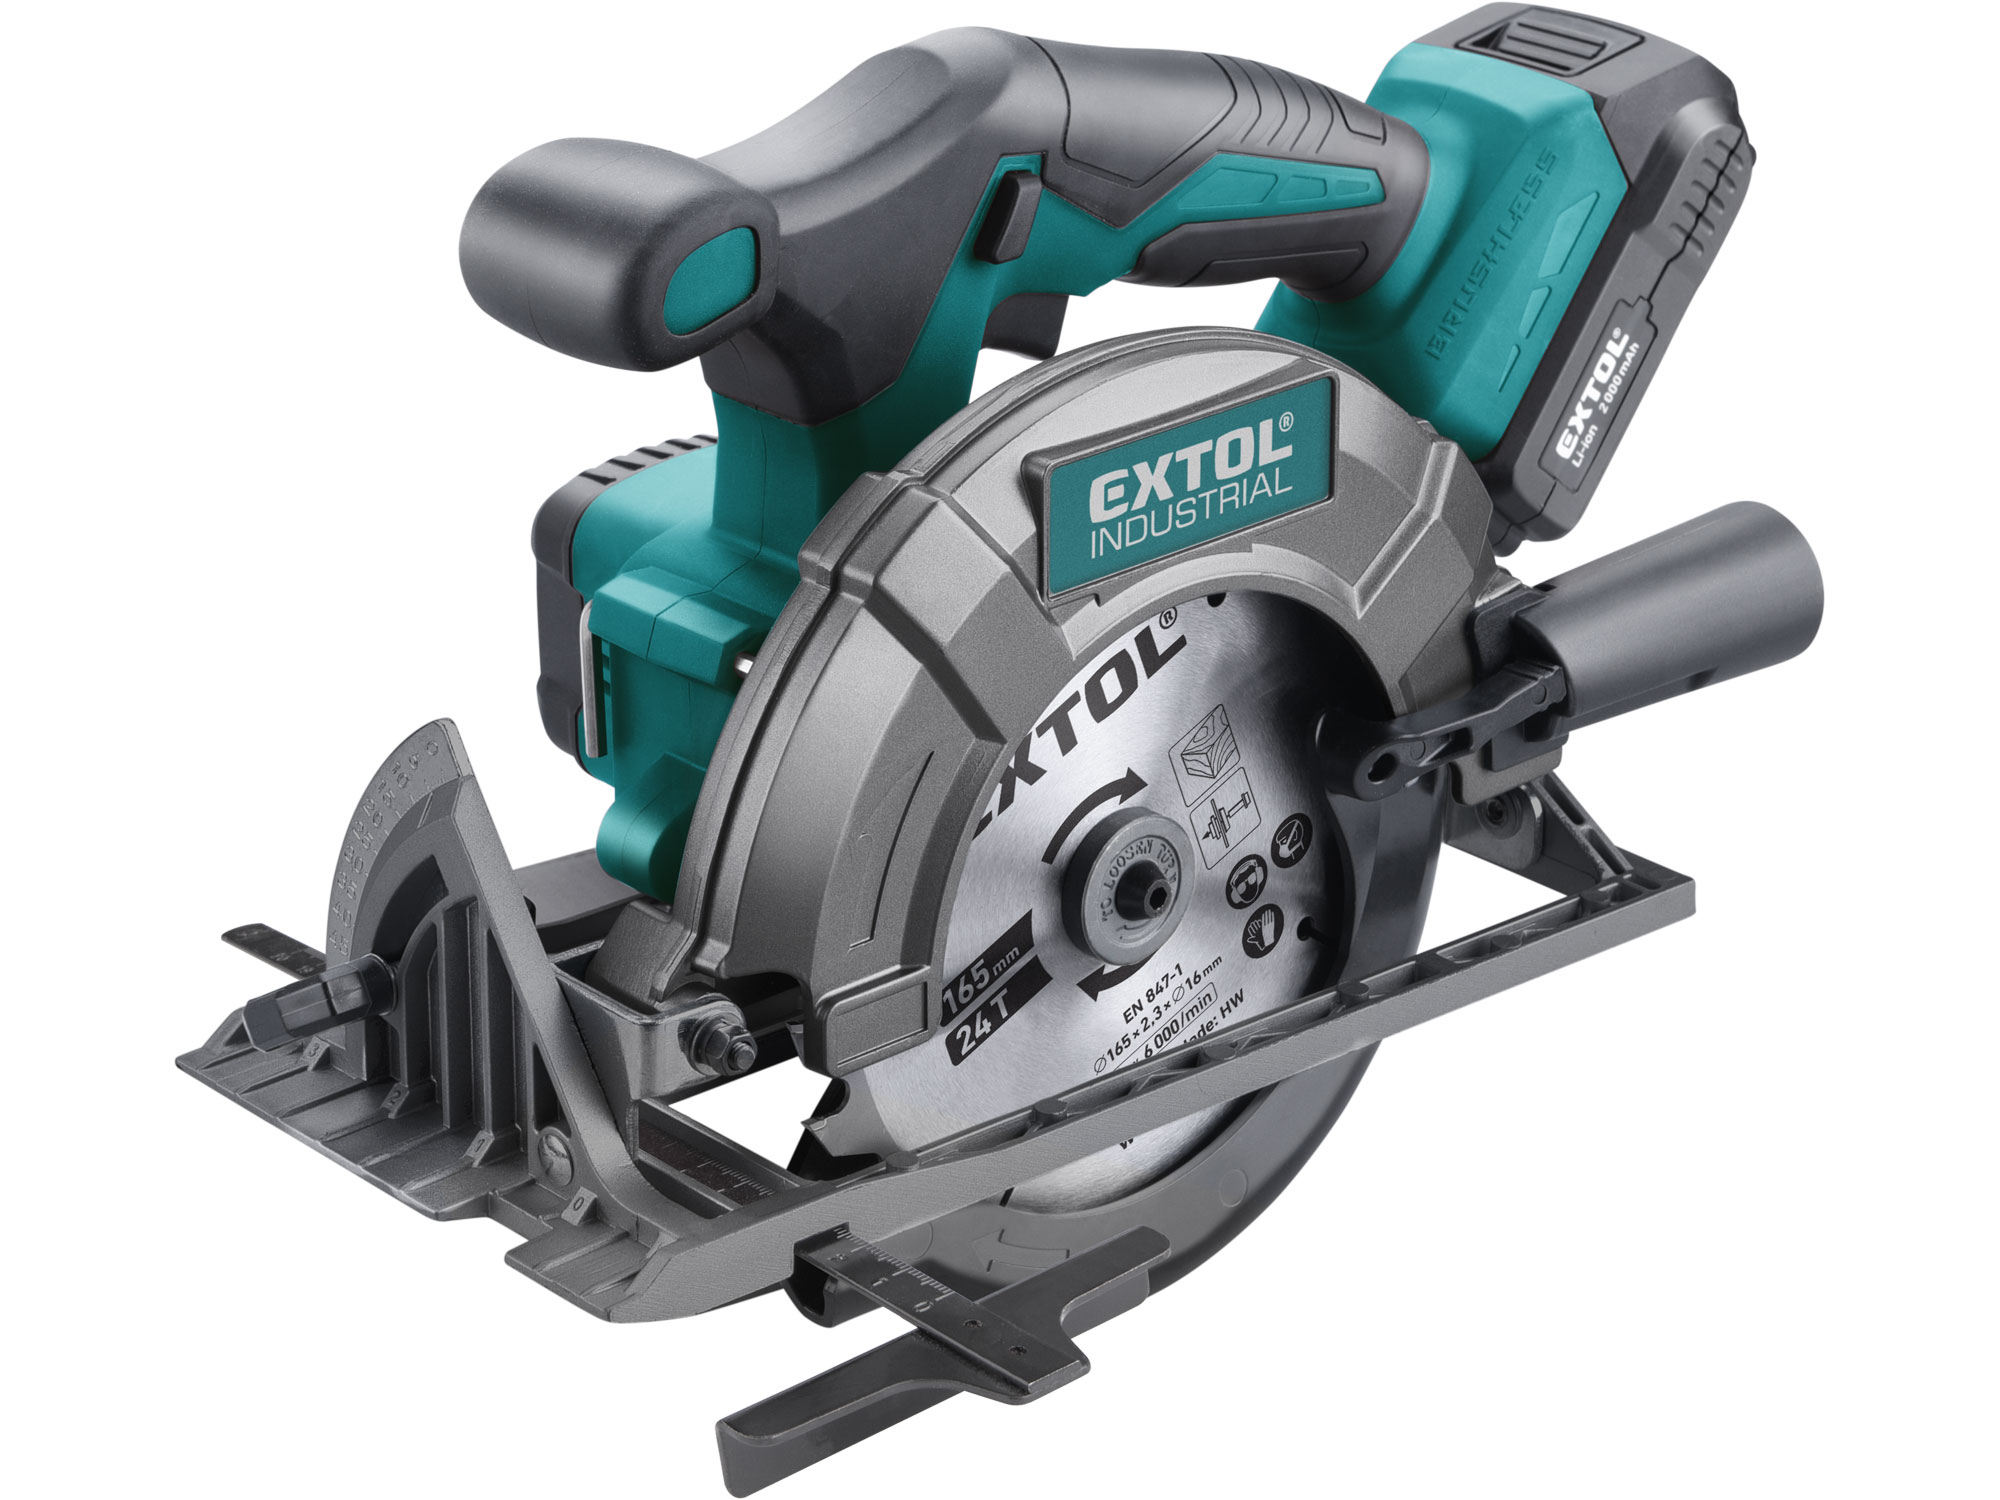 Cordless Circular Saw with Brushless Motor, SHARE20V